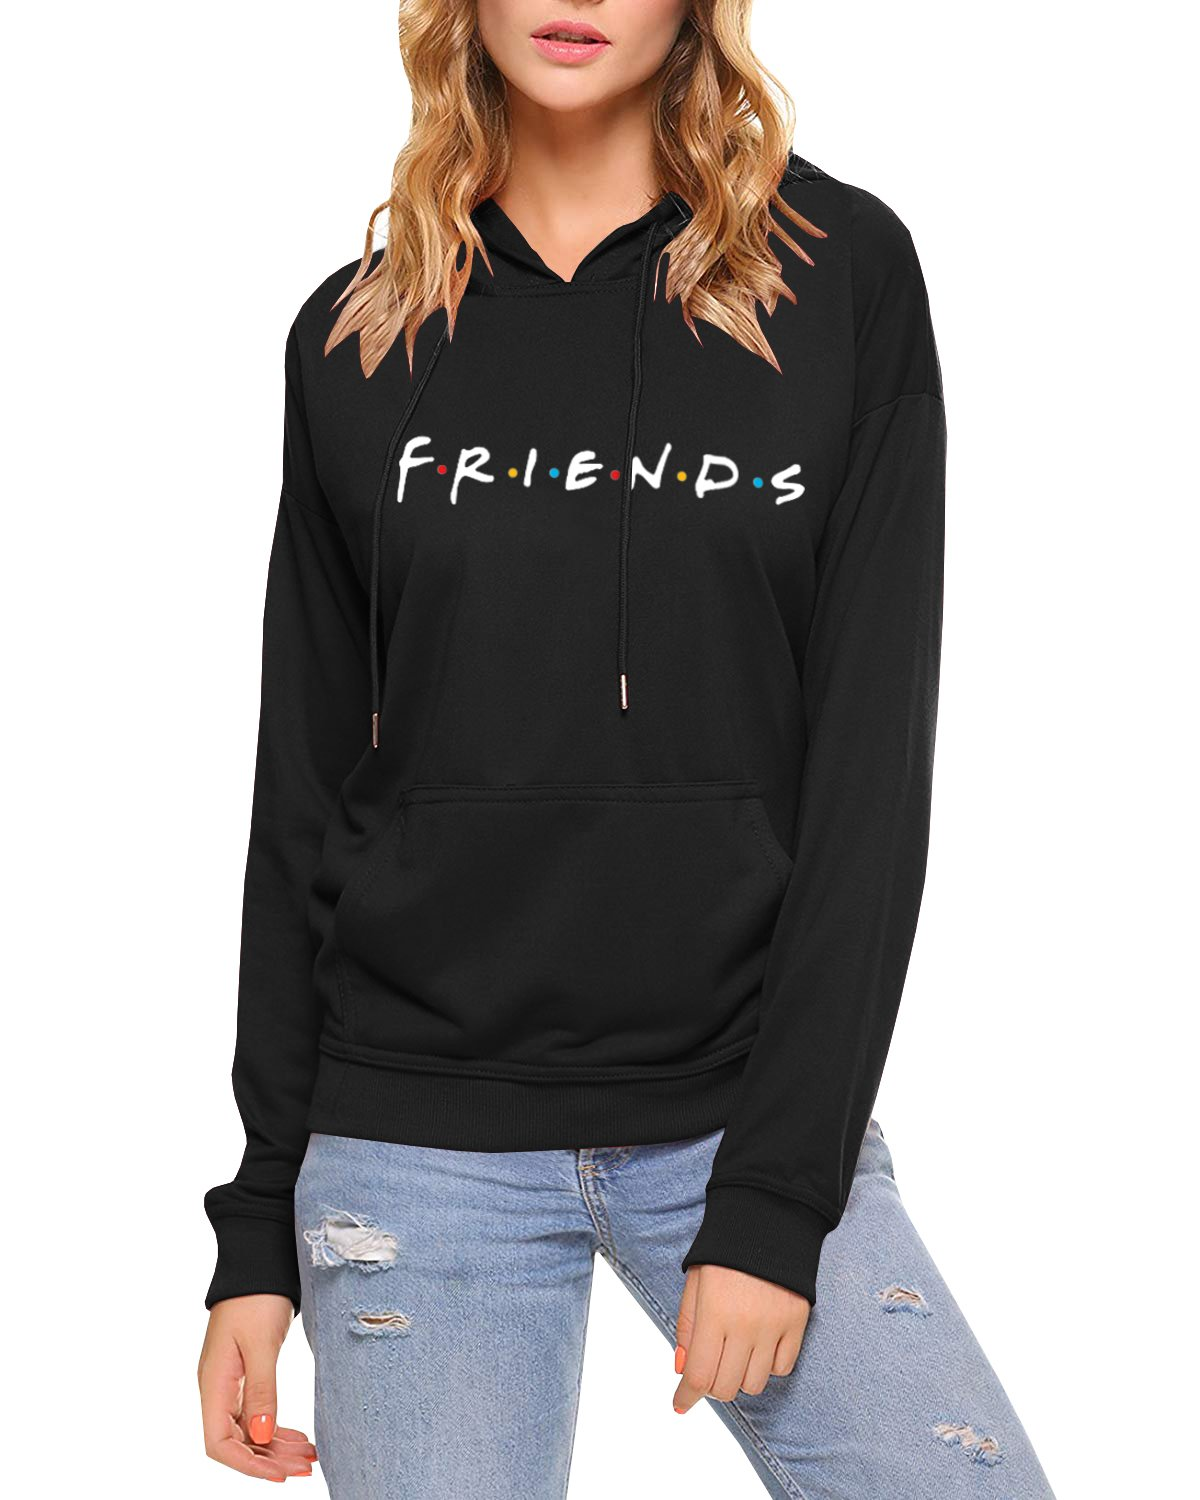 AEURPLT Womens Teen Girls Friends TV Show Hoodies Fall Winter Hooded Sweatshirts Fleece Pullover Tops